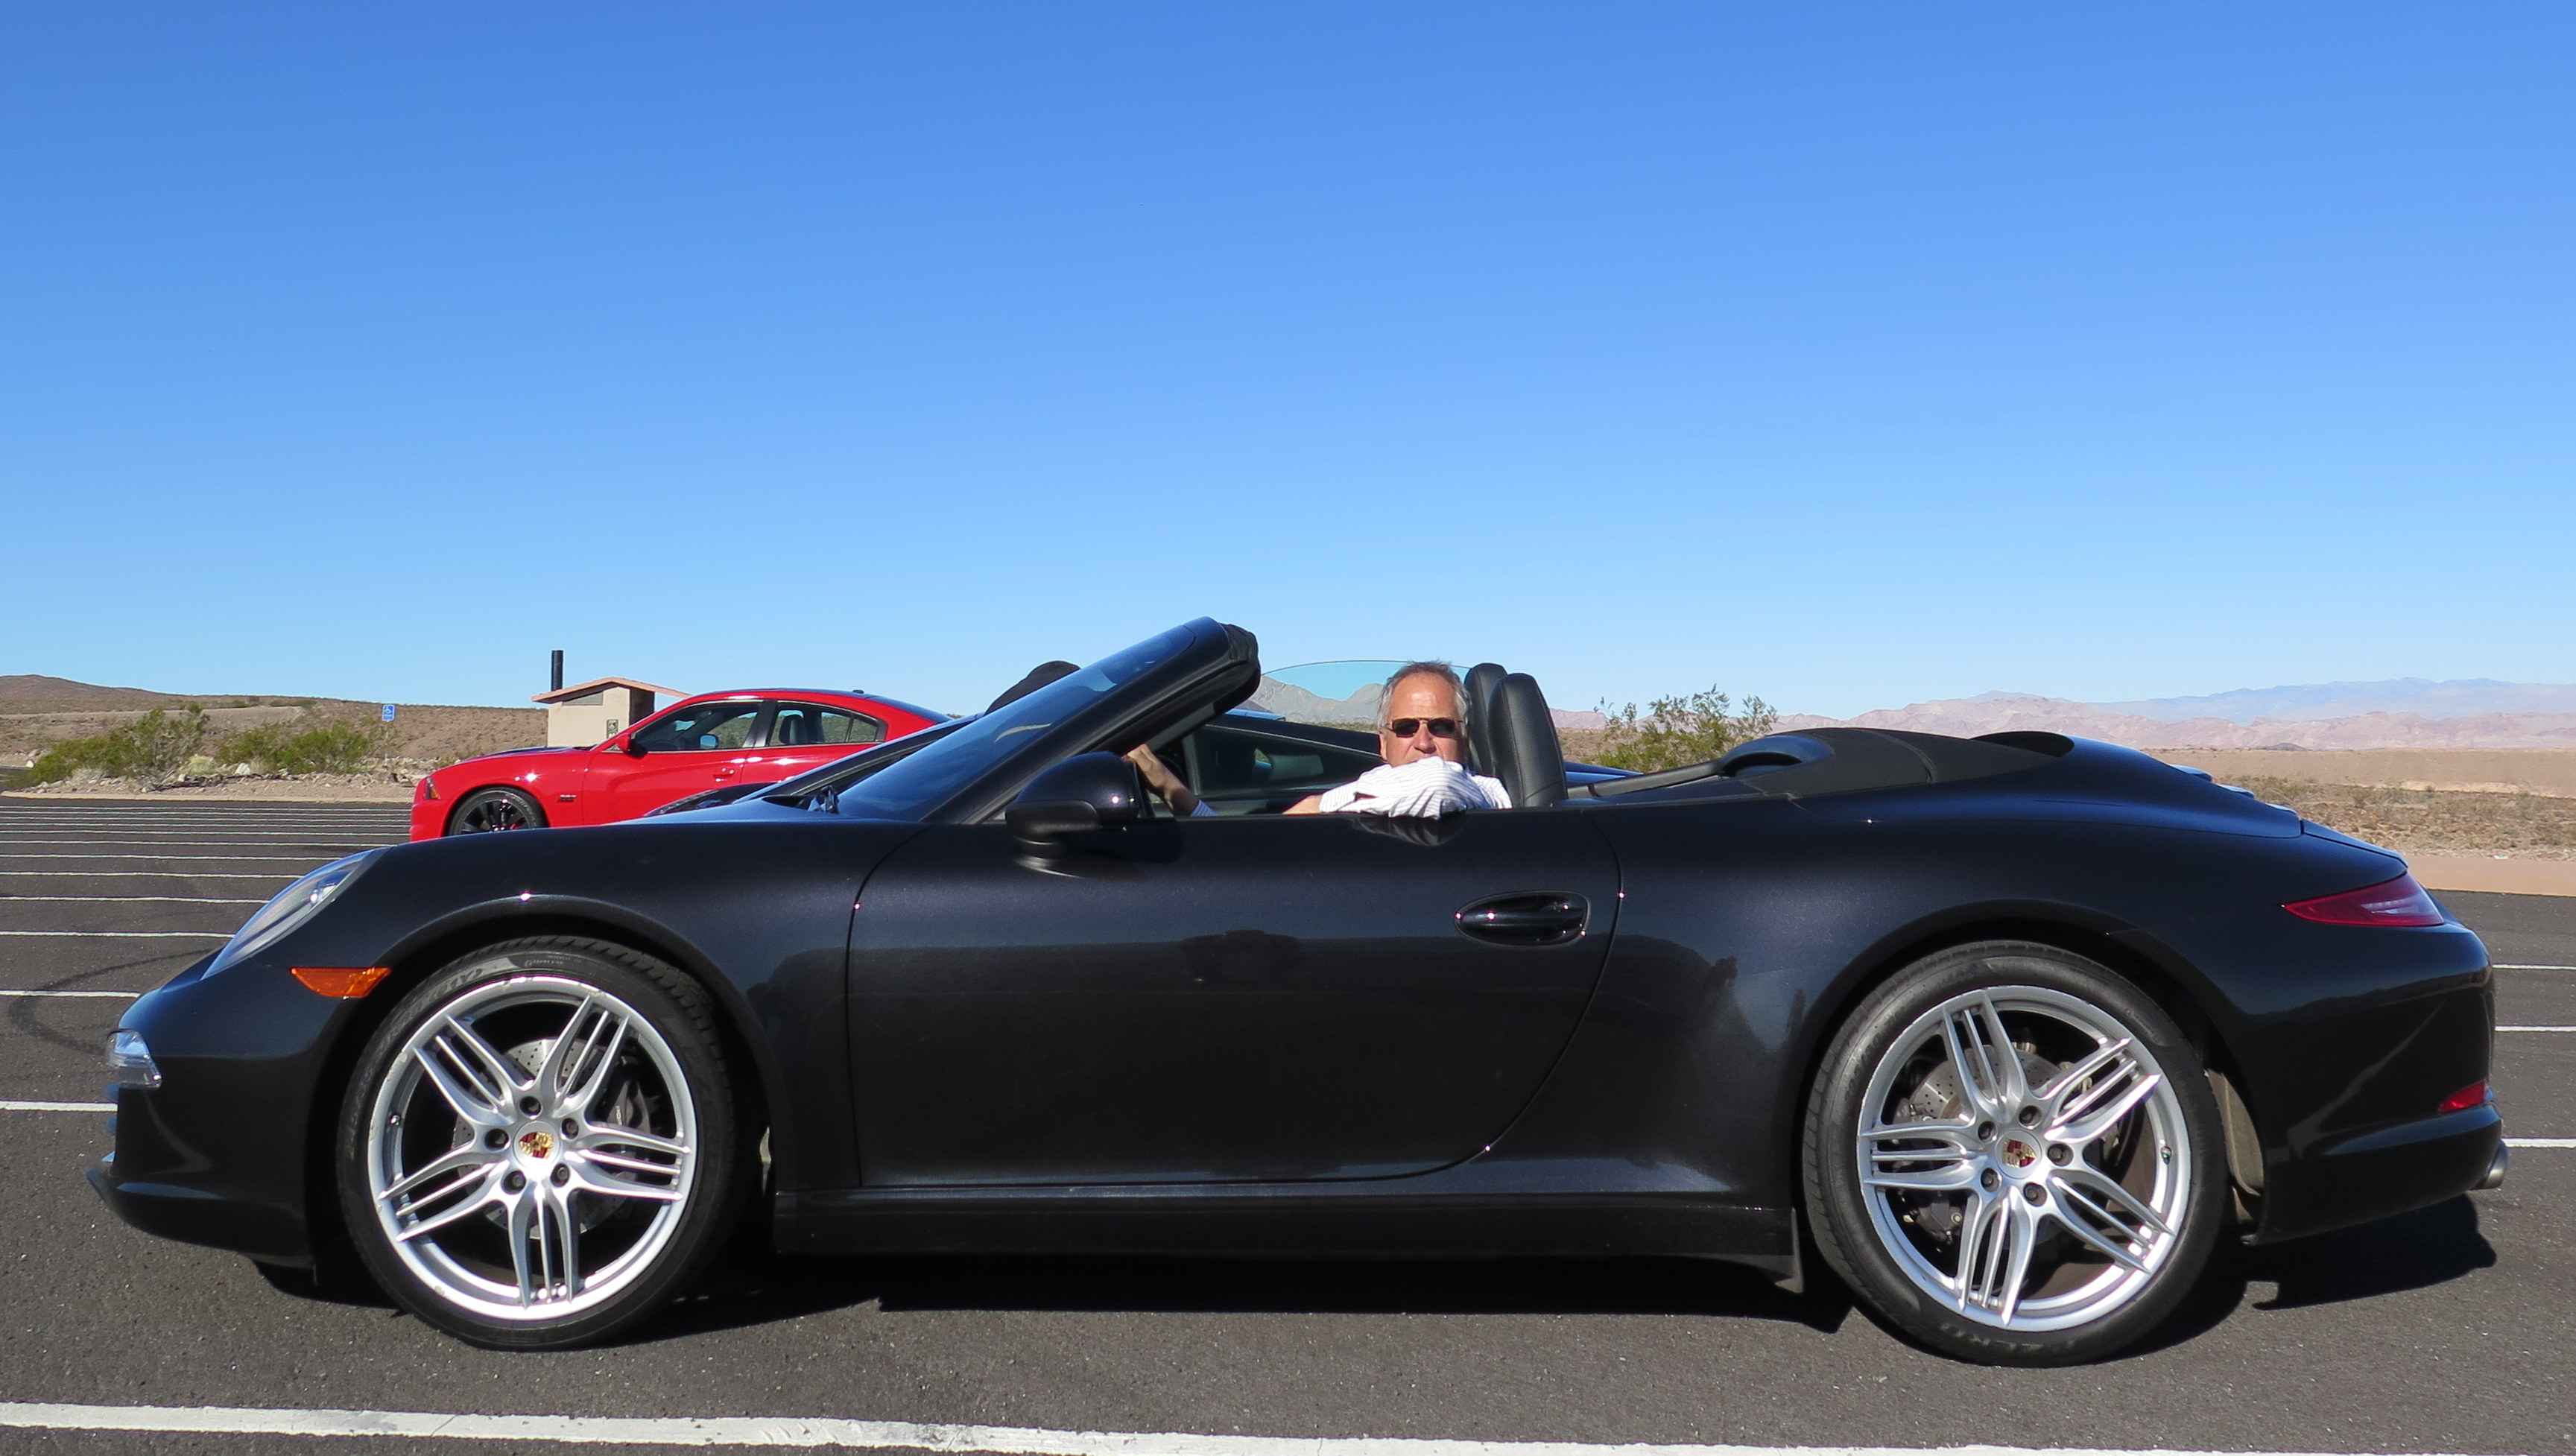 Yours truly in a sleek Porsche Carrera; my new dream car.